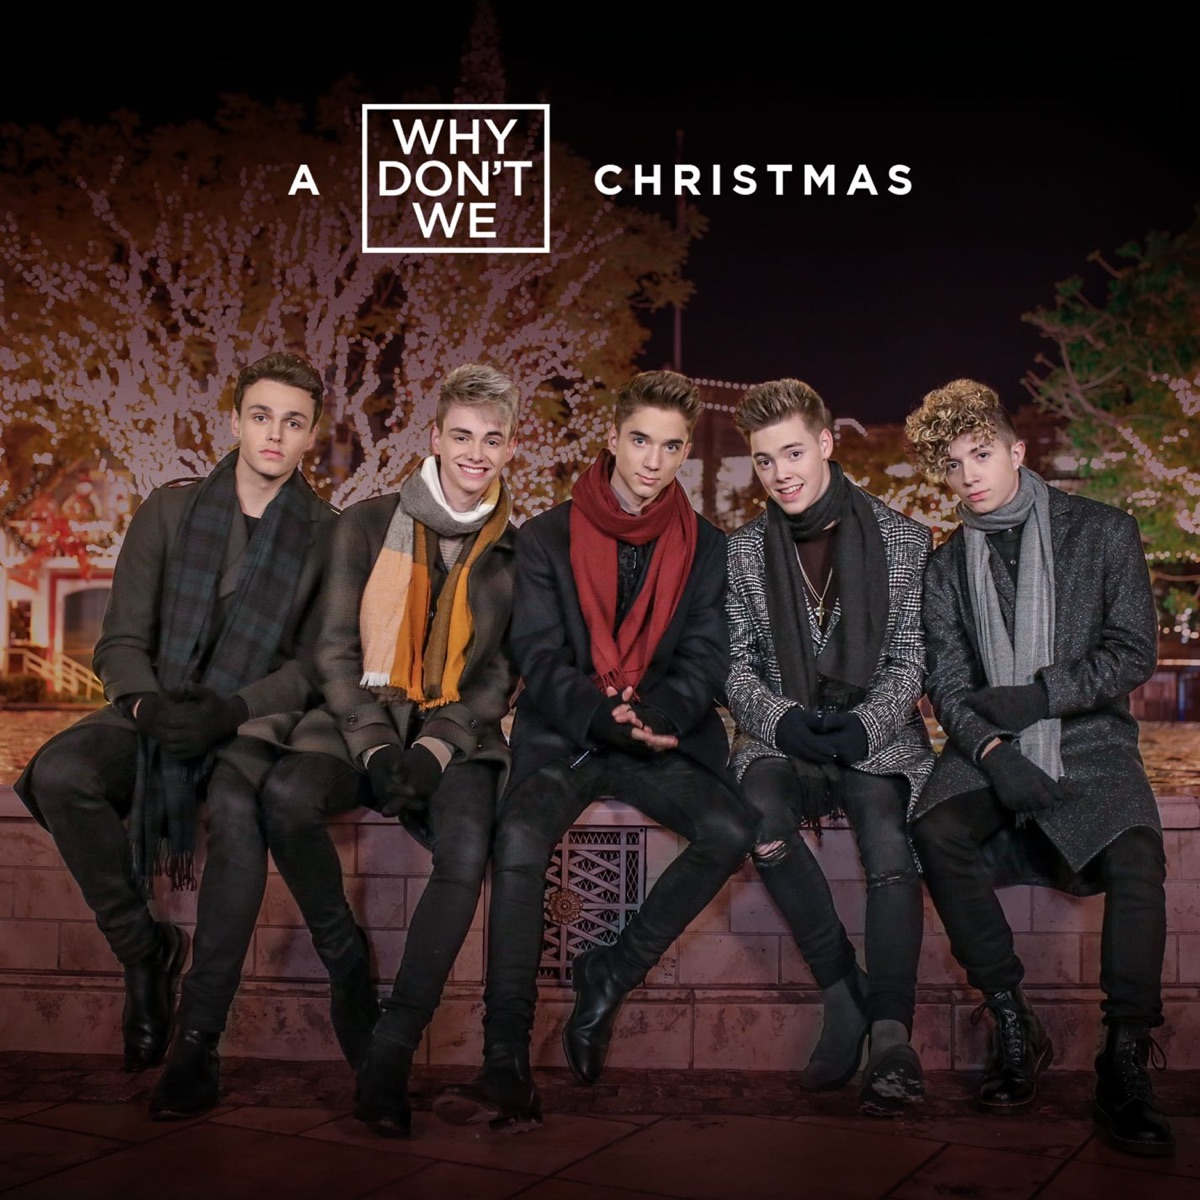 A Why Dont We Christmas - EP Why Dont We CD cover